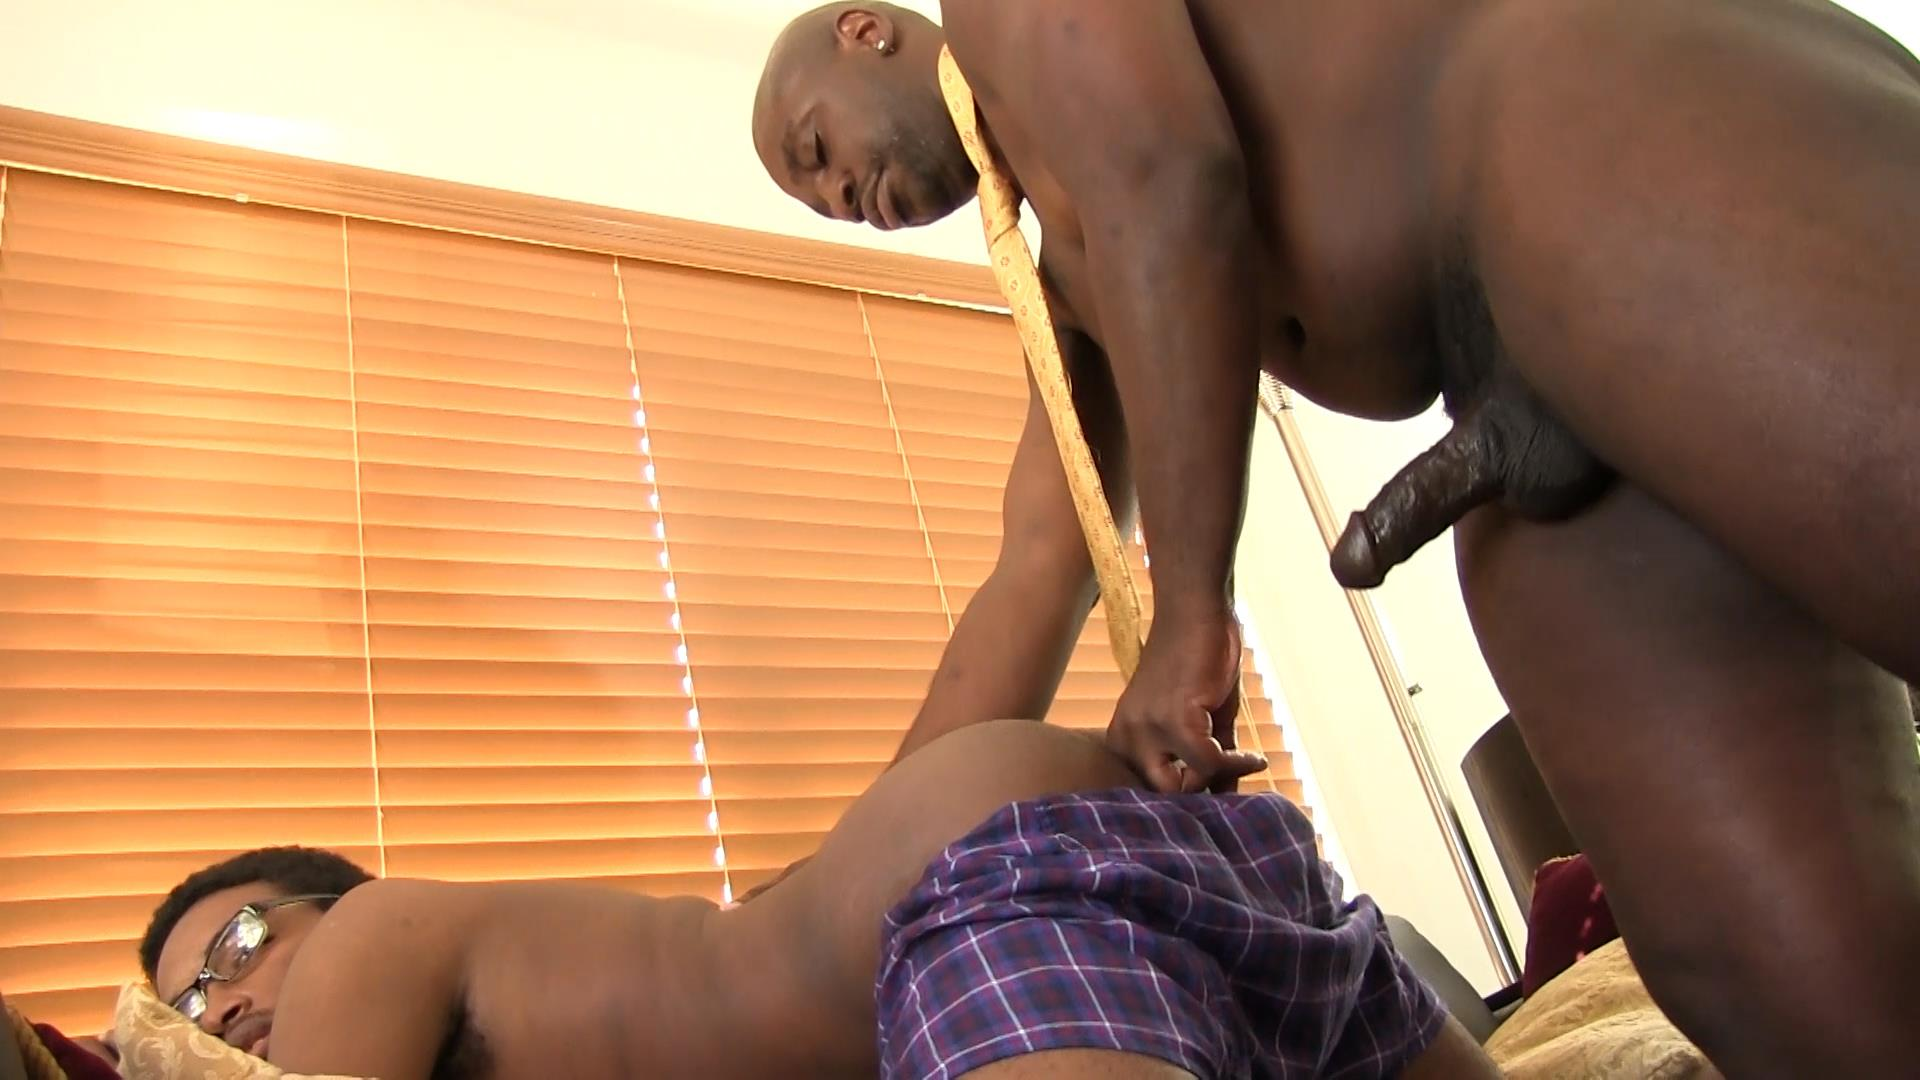 Bareback-Me-Daddy-Daemon-Sadi-and-Donny-Ray-Black-Daddy-Fucking-A-Twink-Bareback-Amateur-Gay-Porn-10 Black Daddy Barebacks His Black Twink With His Big Black Dick